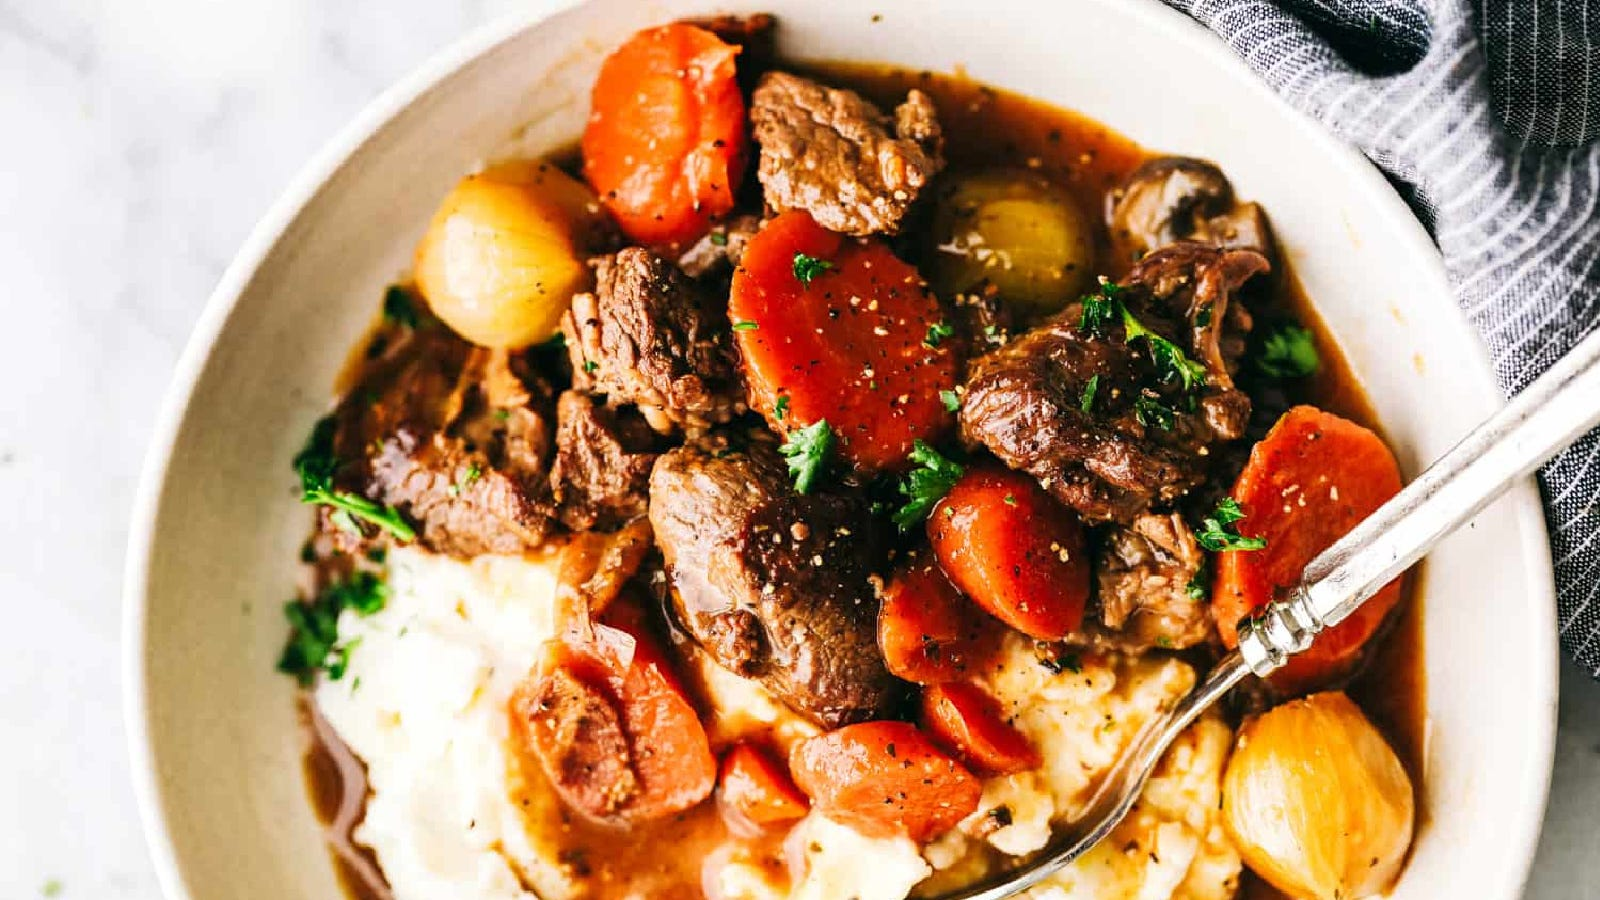 A bowl of hot beef bourguignon with a spoon